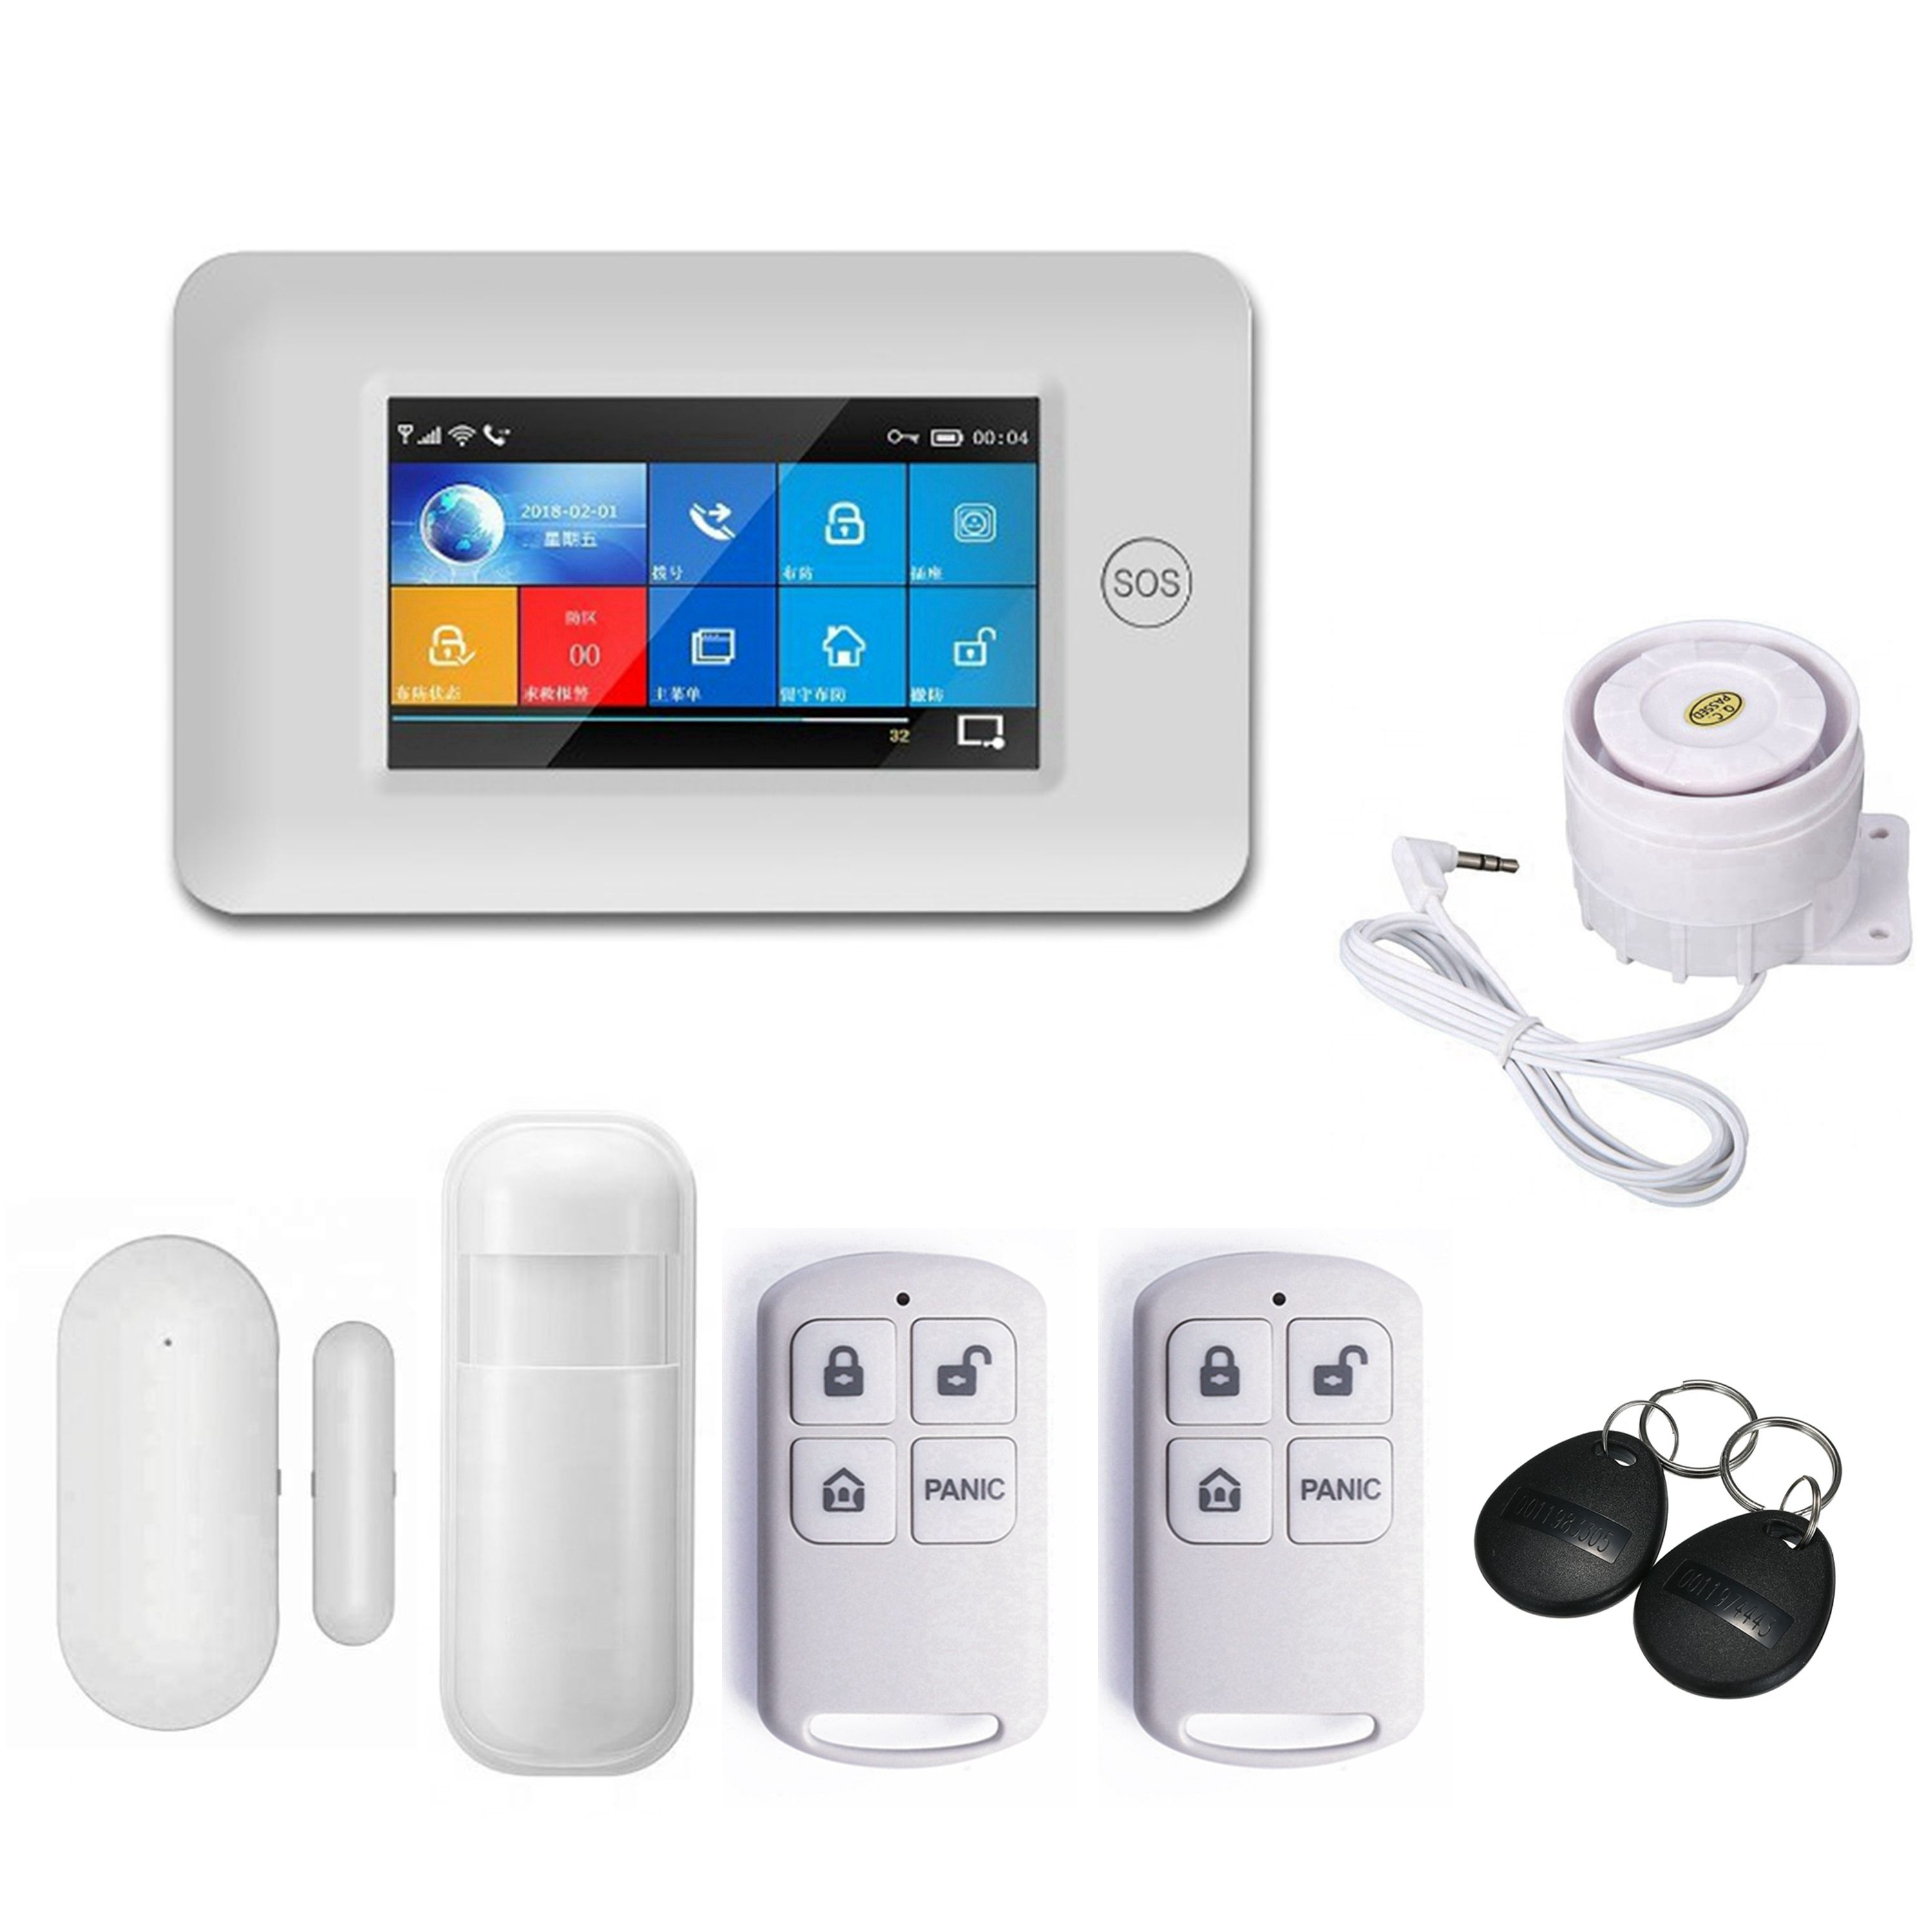 Tuya alarm security home security system smart burglar alarm system wireless house alarm system home security